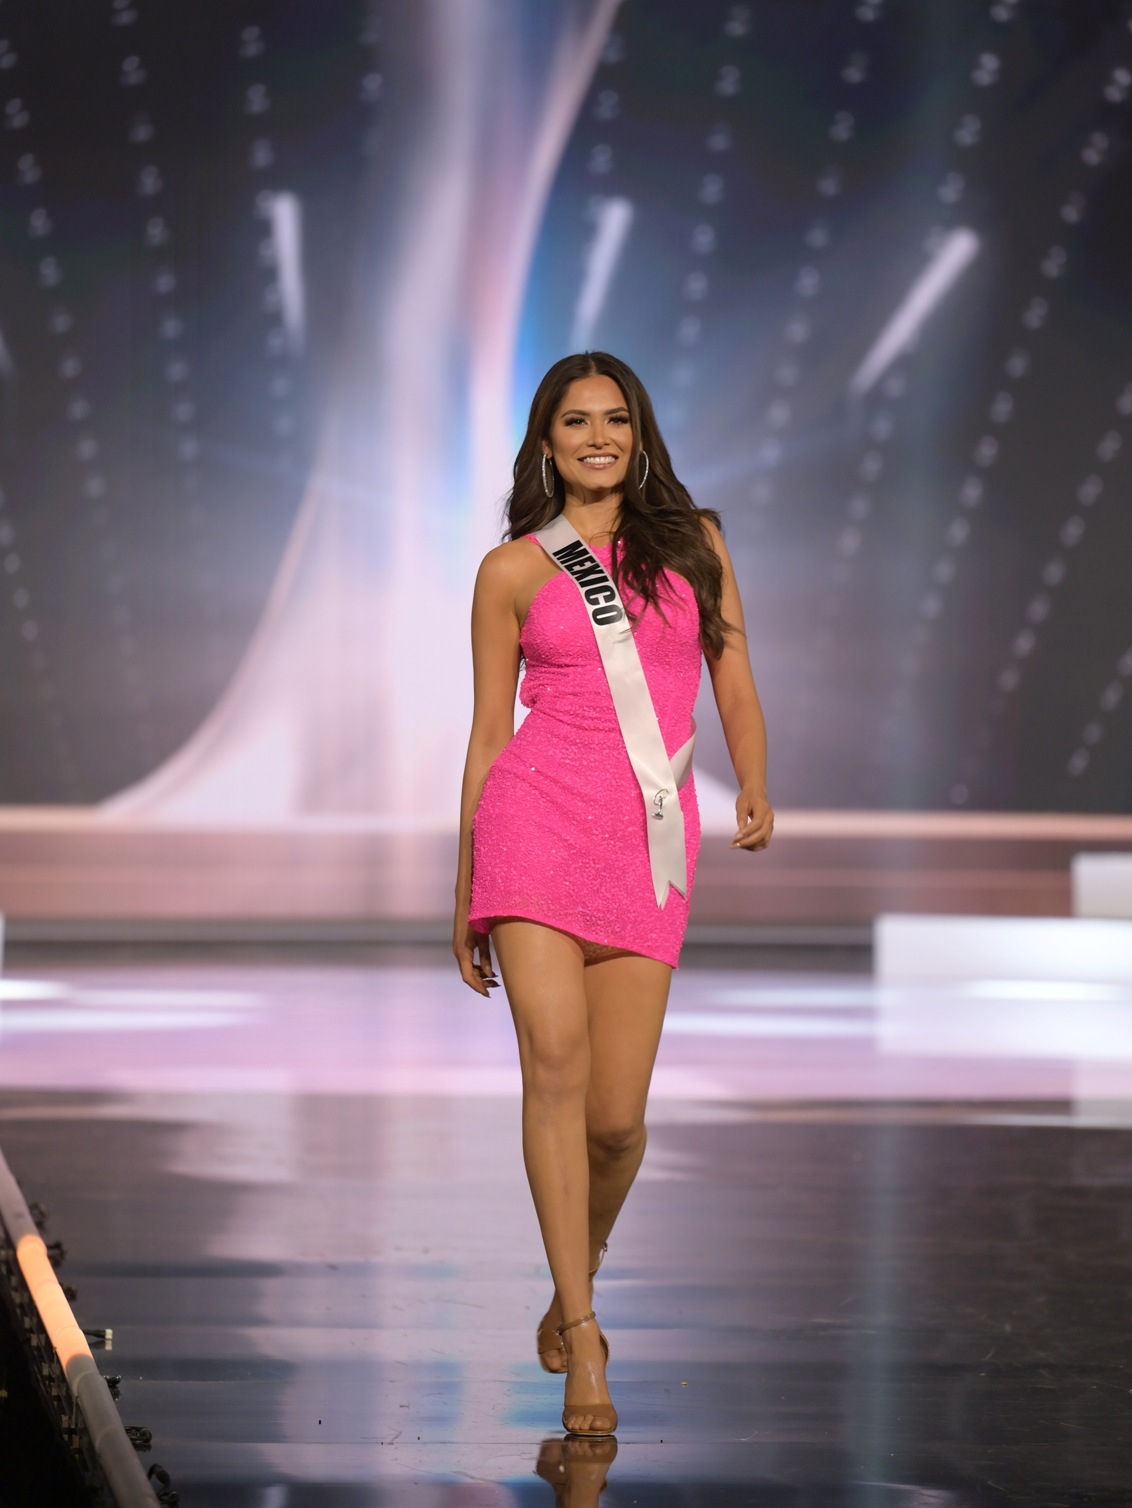 Andrea Meza, Miss Universe Mexico 2020 on stage in fashion by Sherri Hill during the opening of the MISS UNIVERSE® Preliminary Competition at the Seminole Hard Rock Hotel & Casino in Hollywood, Florida on May 14, 2021. Tune in to the live telecast on FYI and Telemundo on Sunday, May 16 at 8:00 PM ET to see who will become the next Miss Universe.